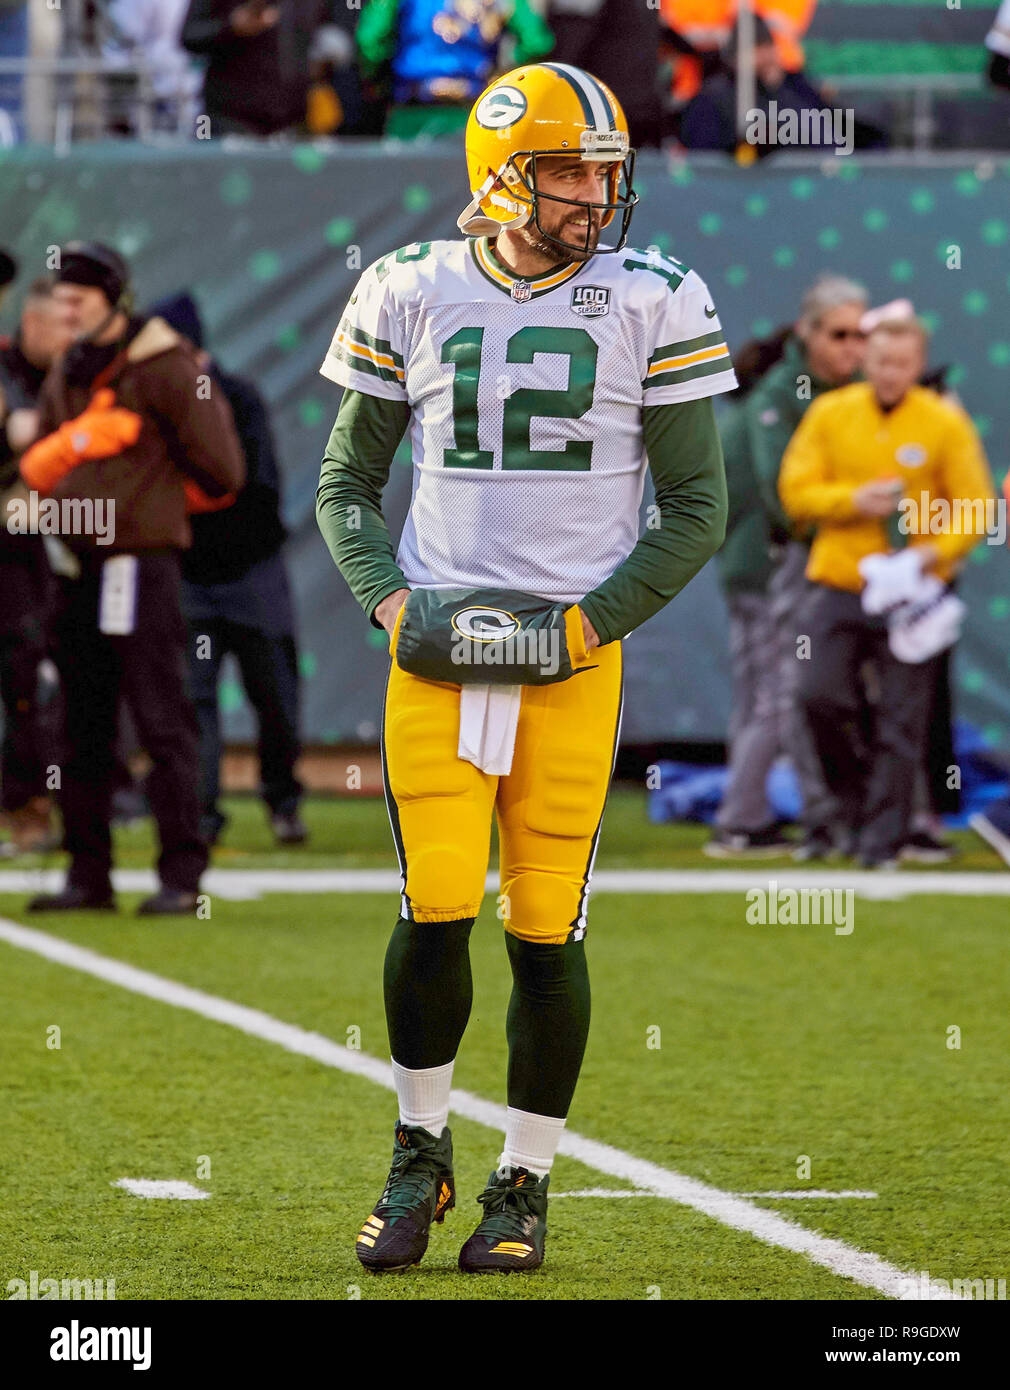 East Rutherford, New Jersey, USA. 23rd Dec, 2018. Green Bay Packers